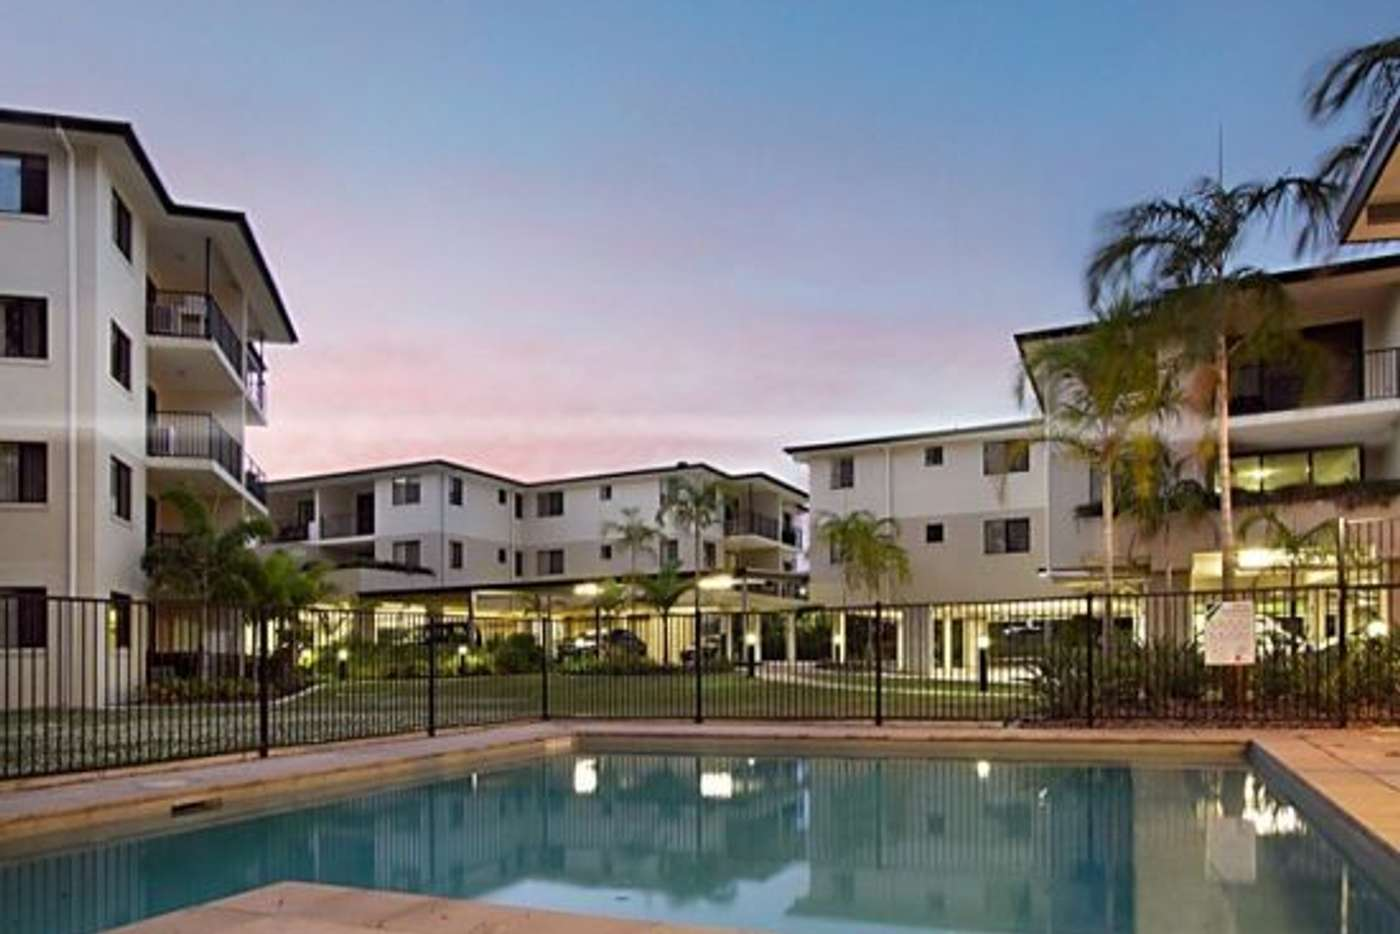 Main view of Homely apartment listing, 234 /26 Edward Street, Caboolture QLD 4510